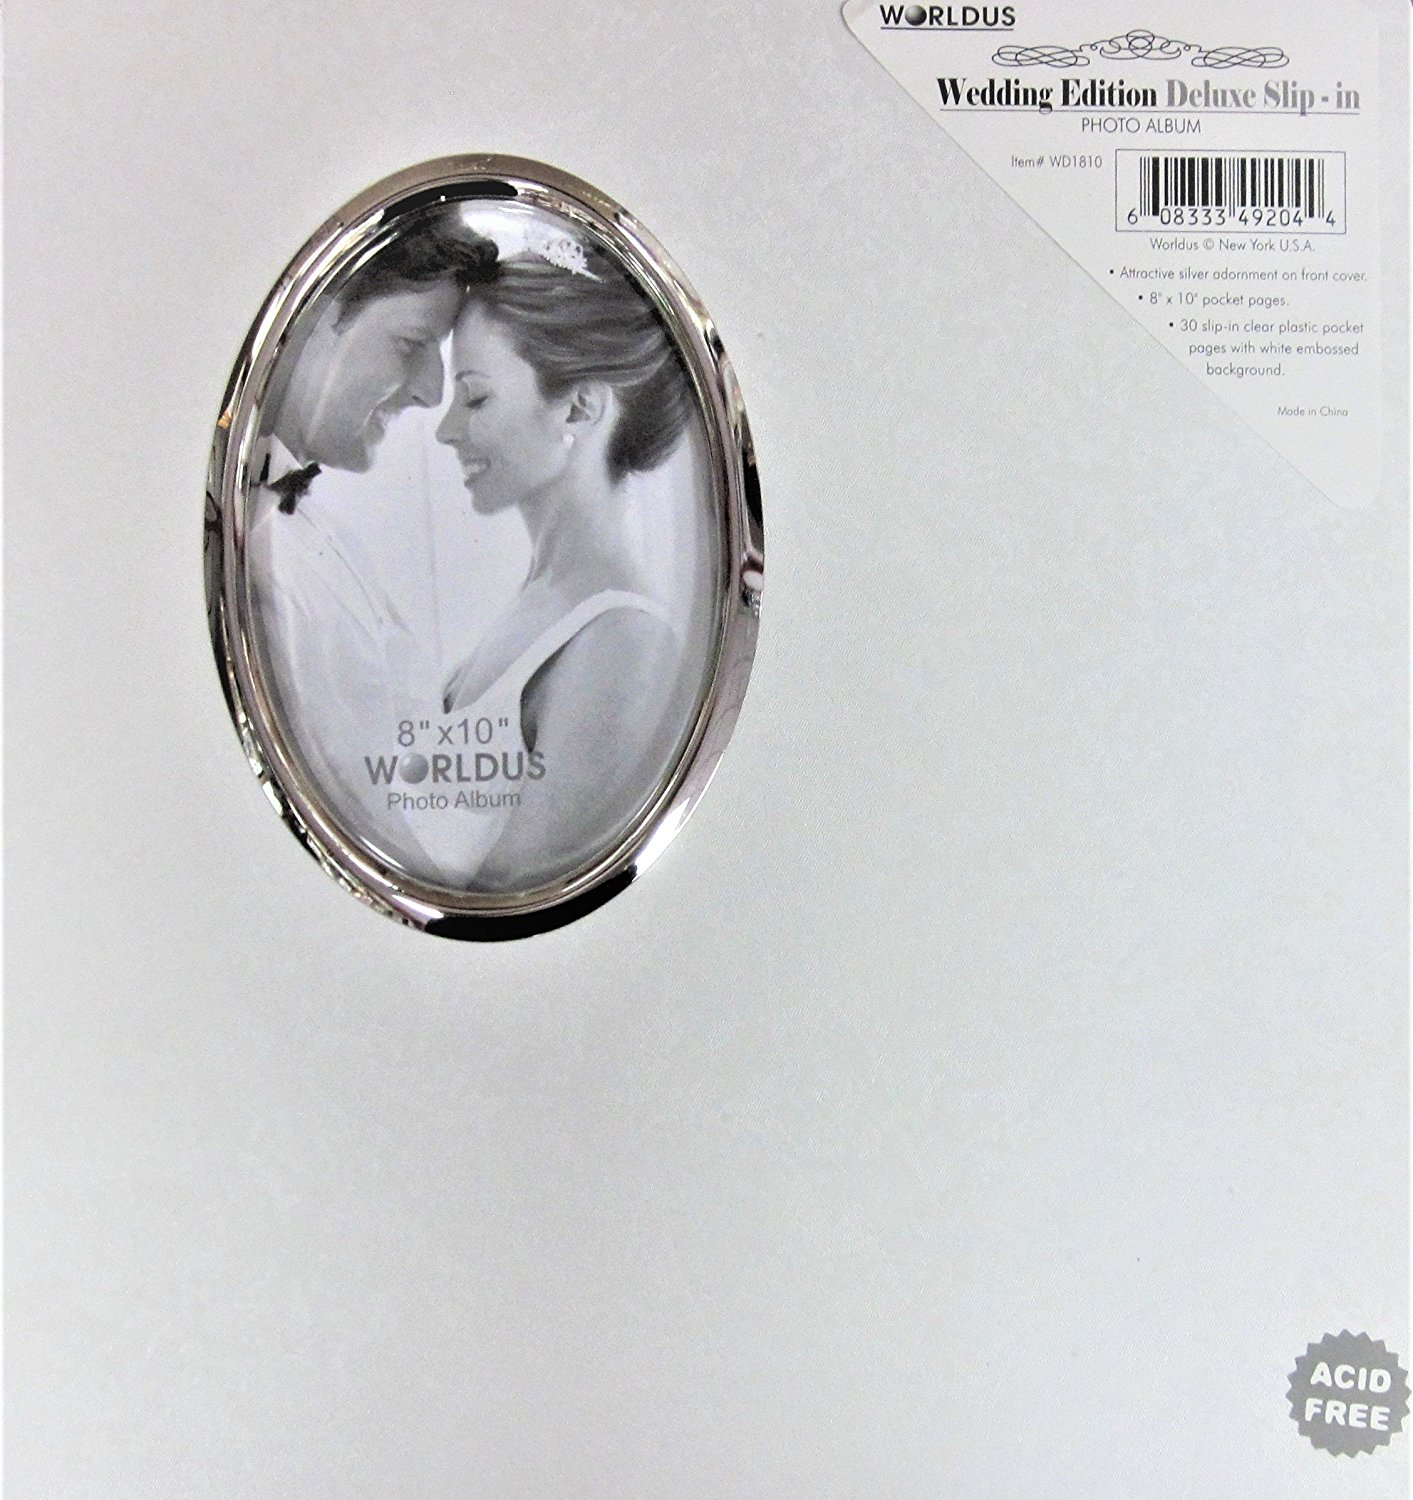 White Wedding Photo Album With Oval Opening On Cover Holds 30